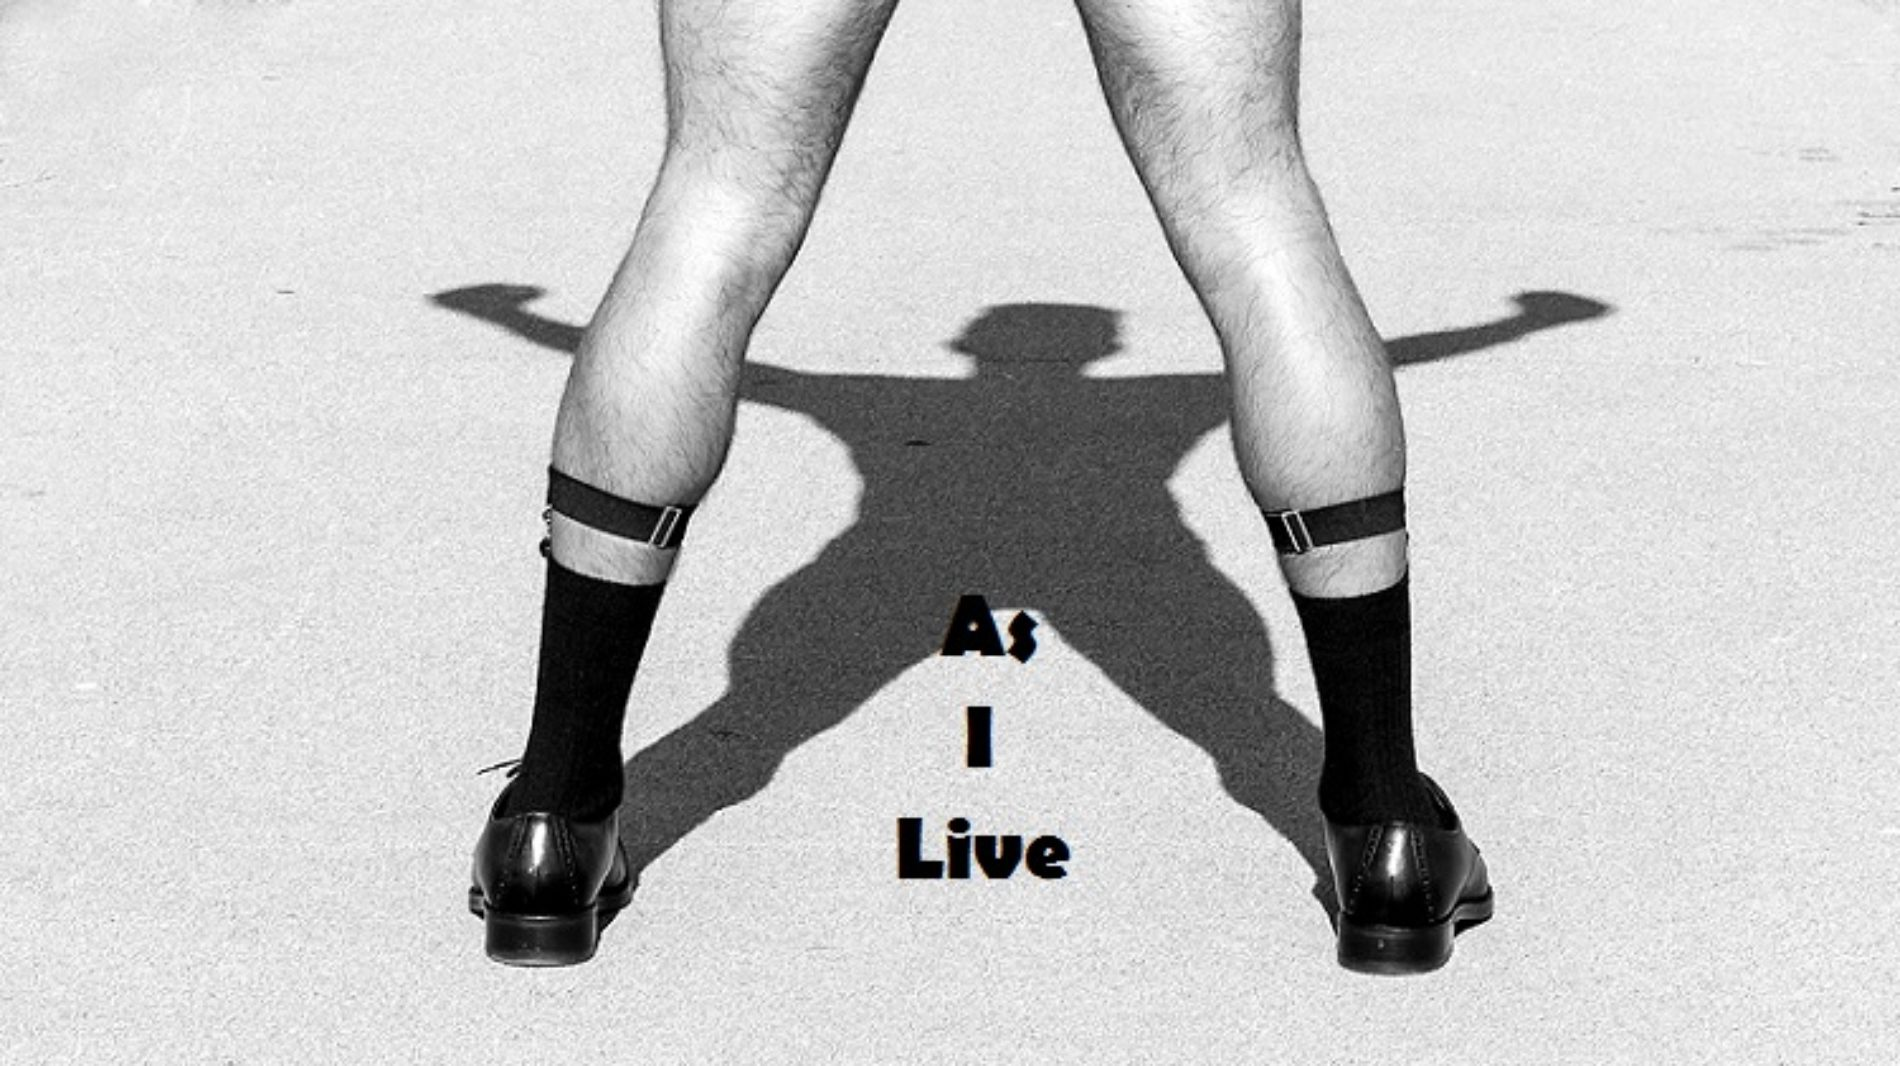 AS I LIVE: 2 (Honesty, Highly Overrated)